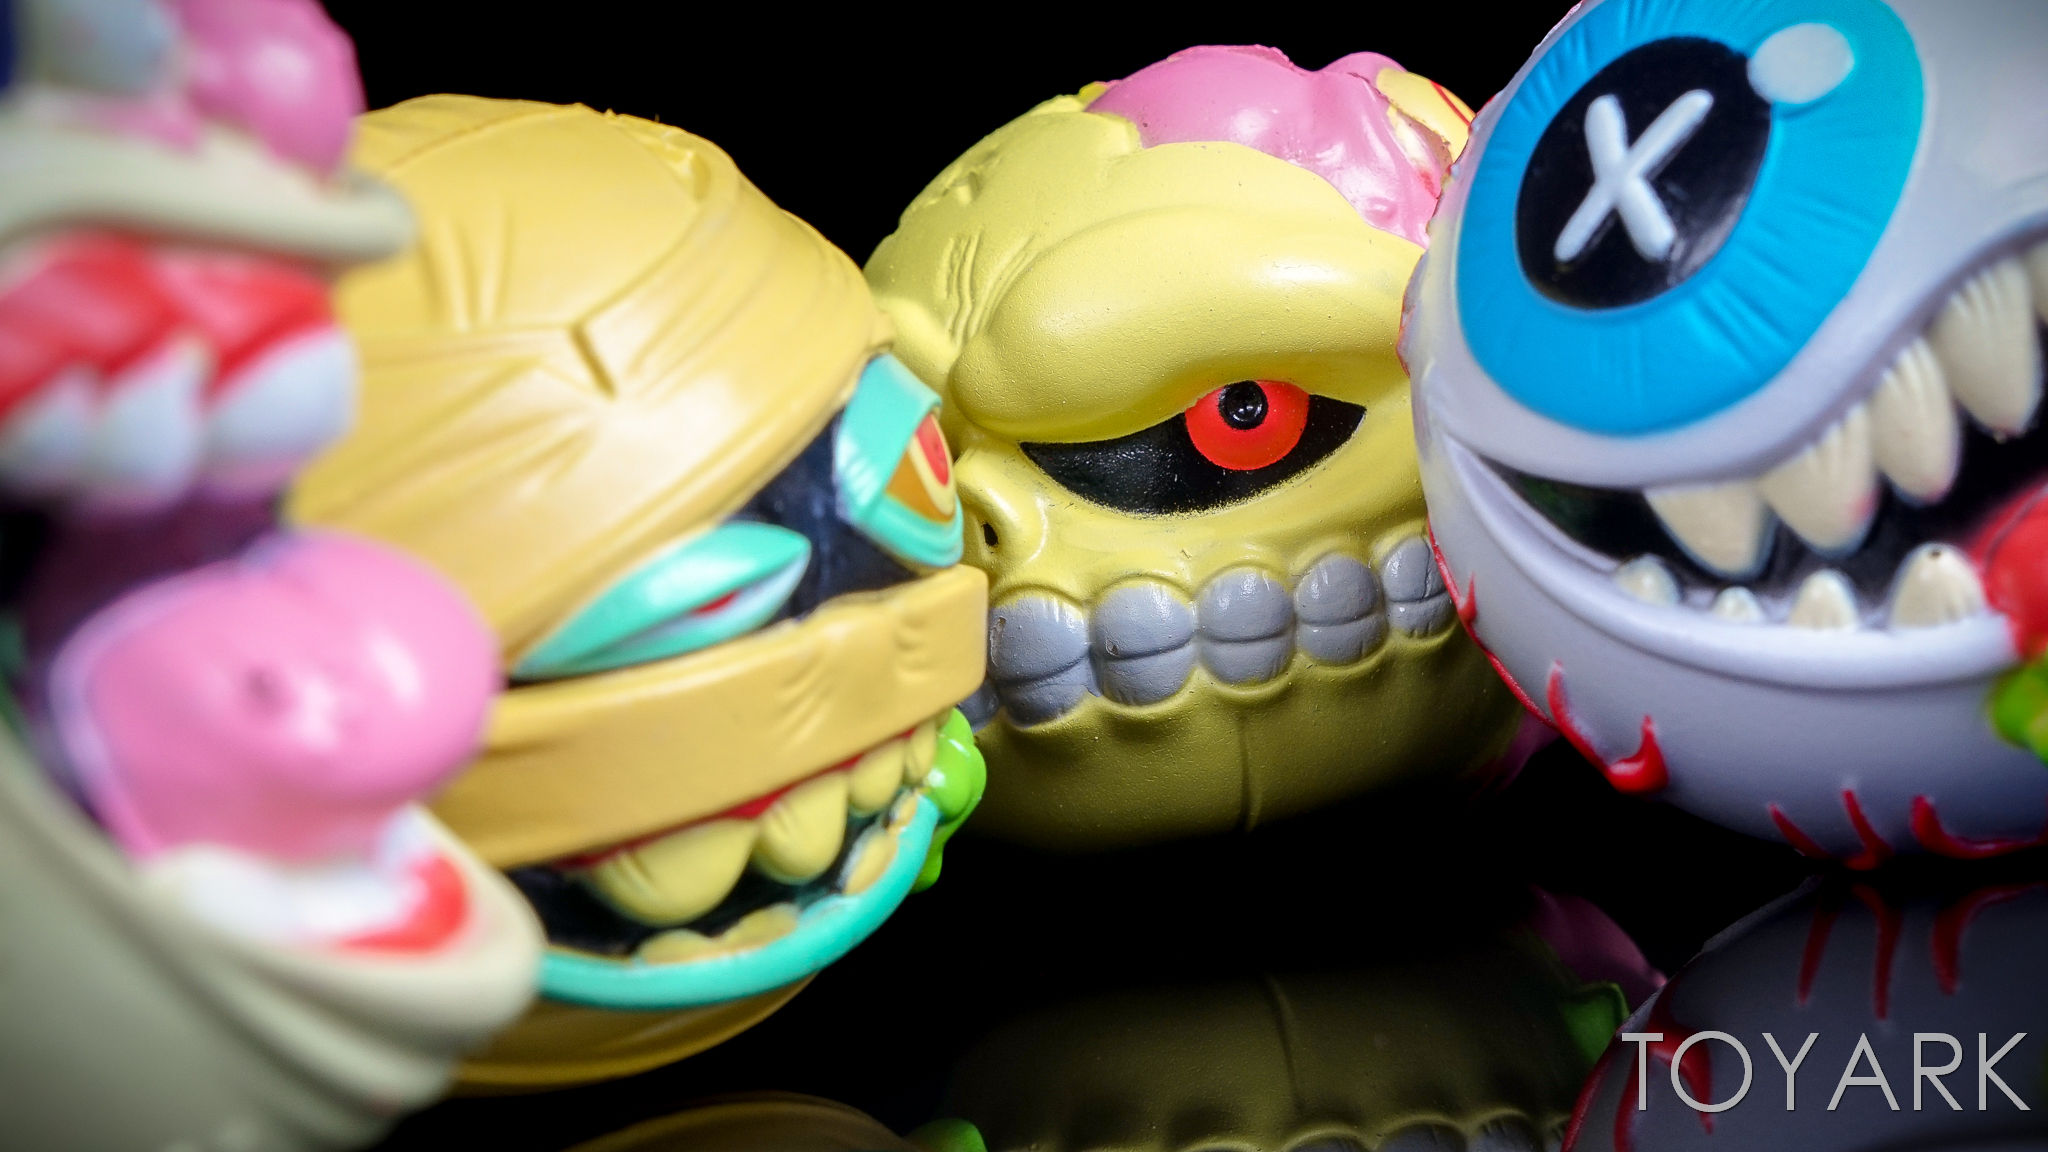 http://news.toyark.com/wp-content/uploads/sites/4/2017/01/Just-Play-Series-1-Madballs-039.jpg